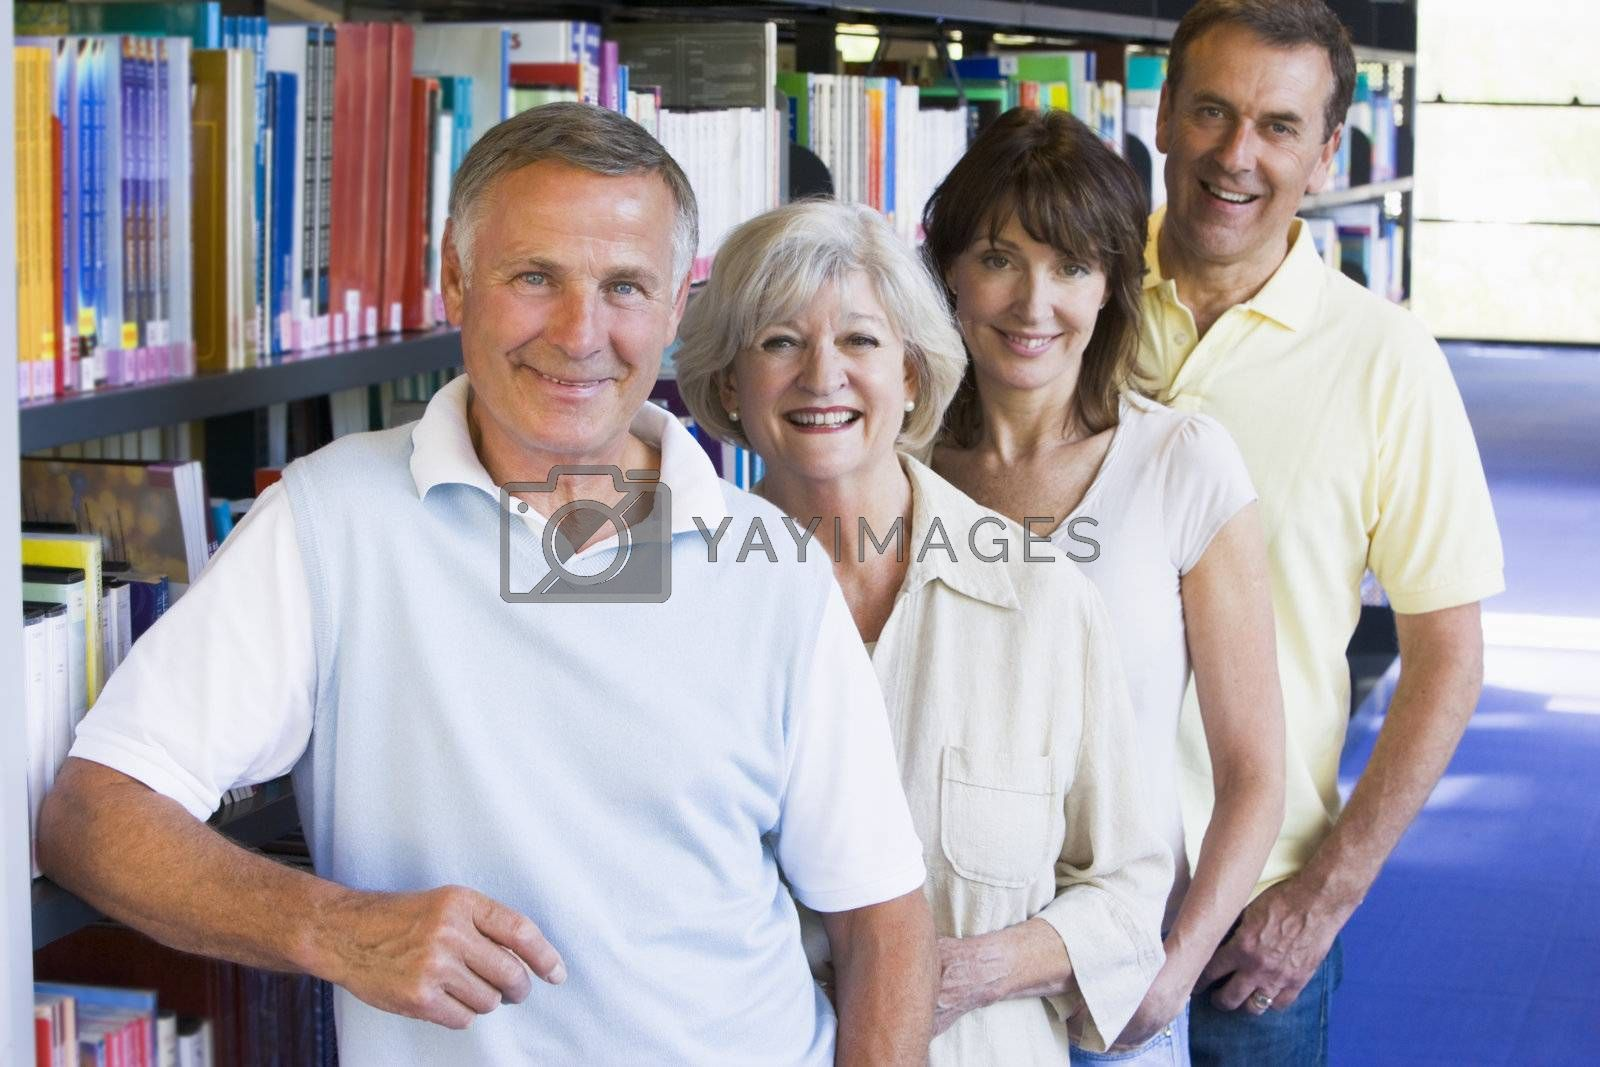 Four people in library standing by bookshelves